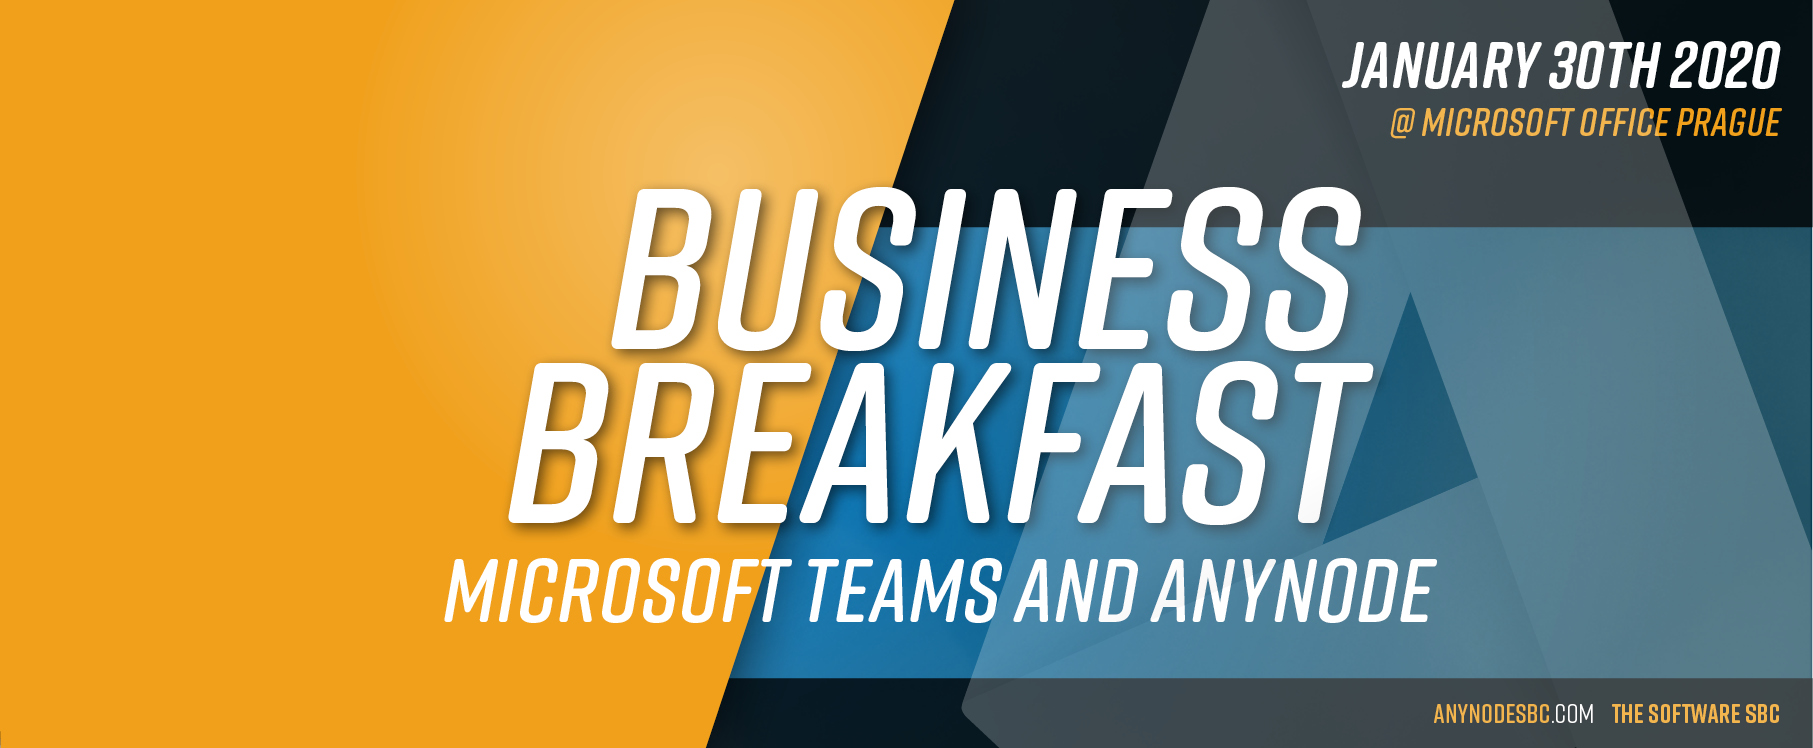 Business Breakfast @ Microsoft Office Prague